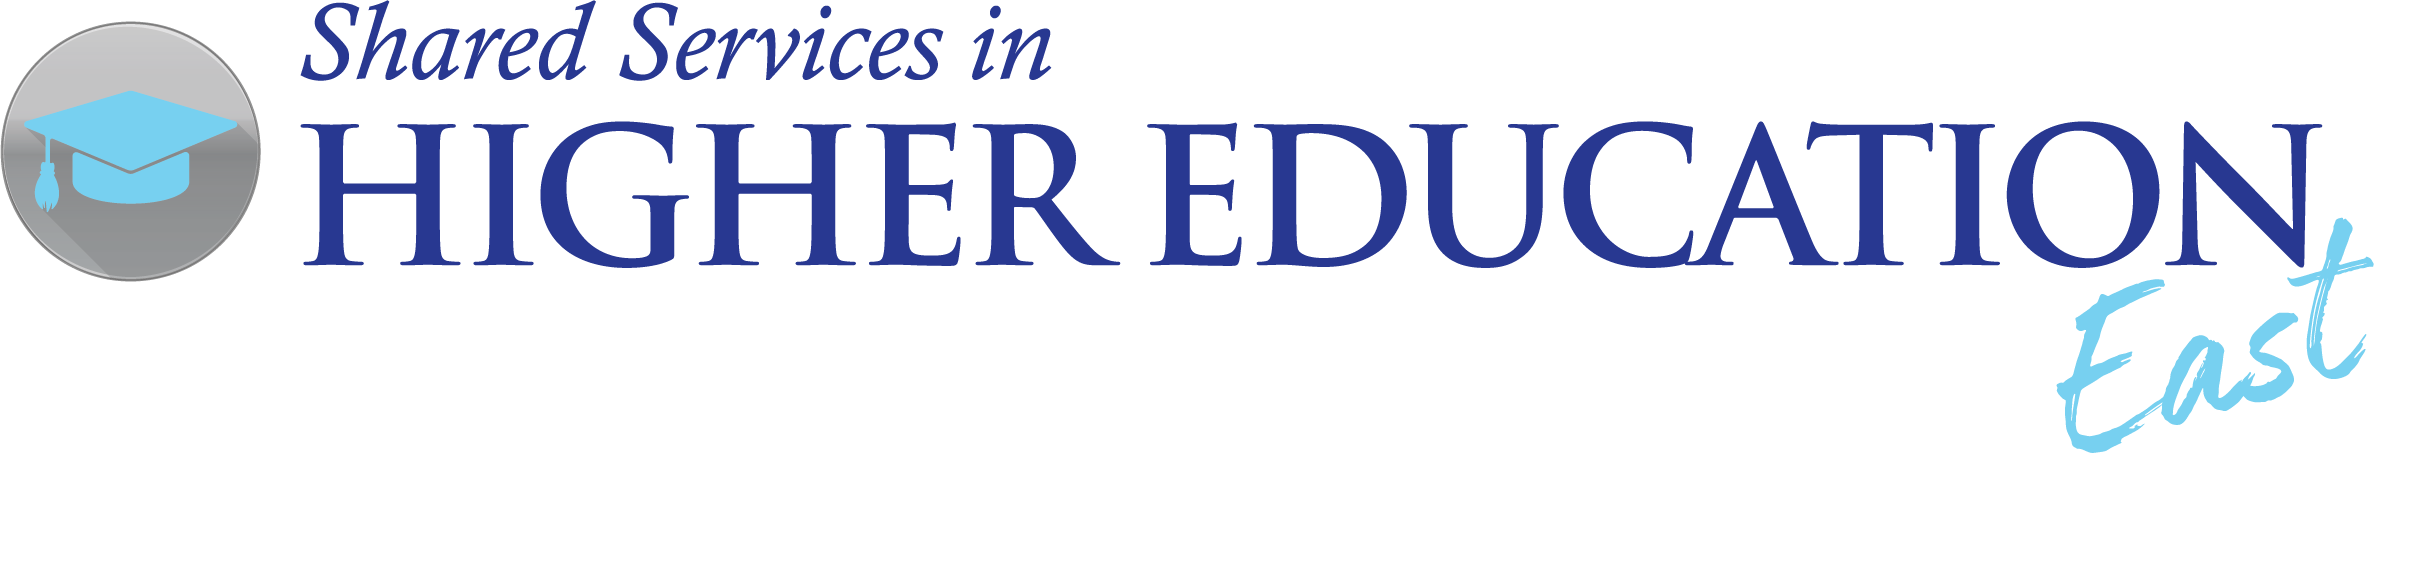 Shared Services Higher Education East